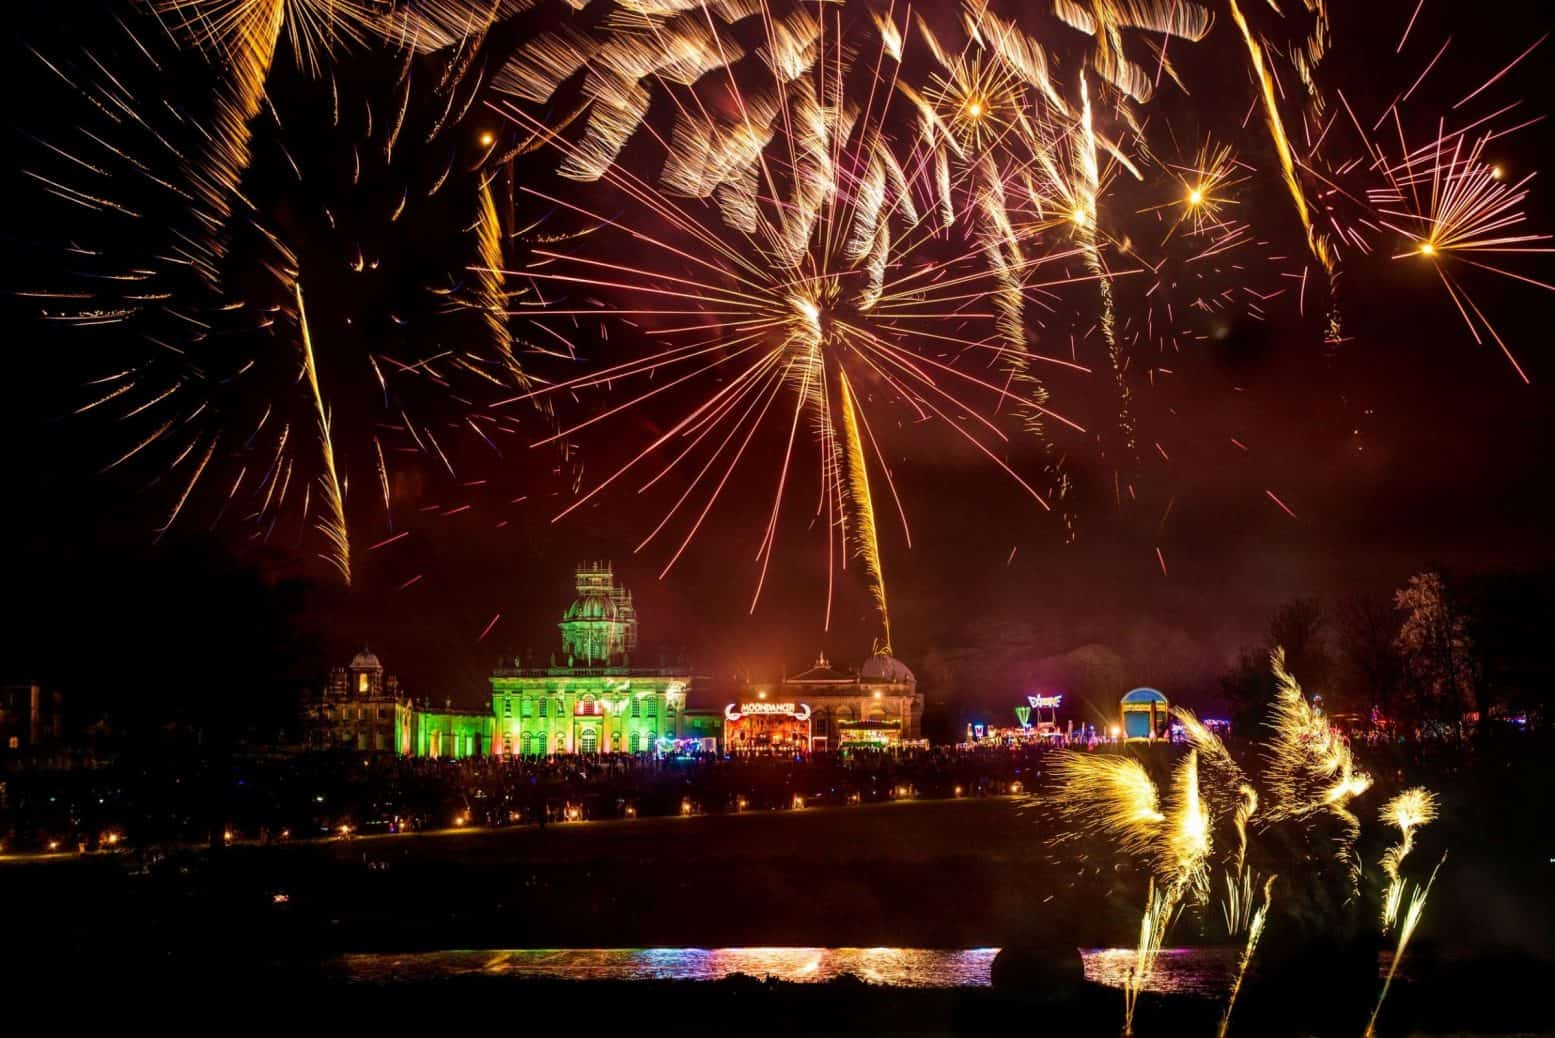 Fireworks Display and Bonfire Night in and Near York 2020